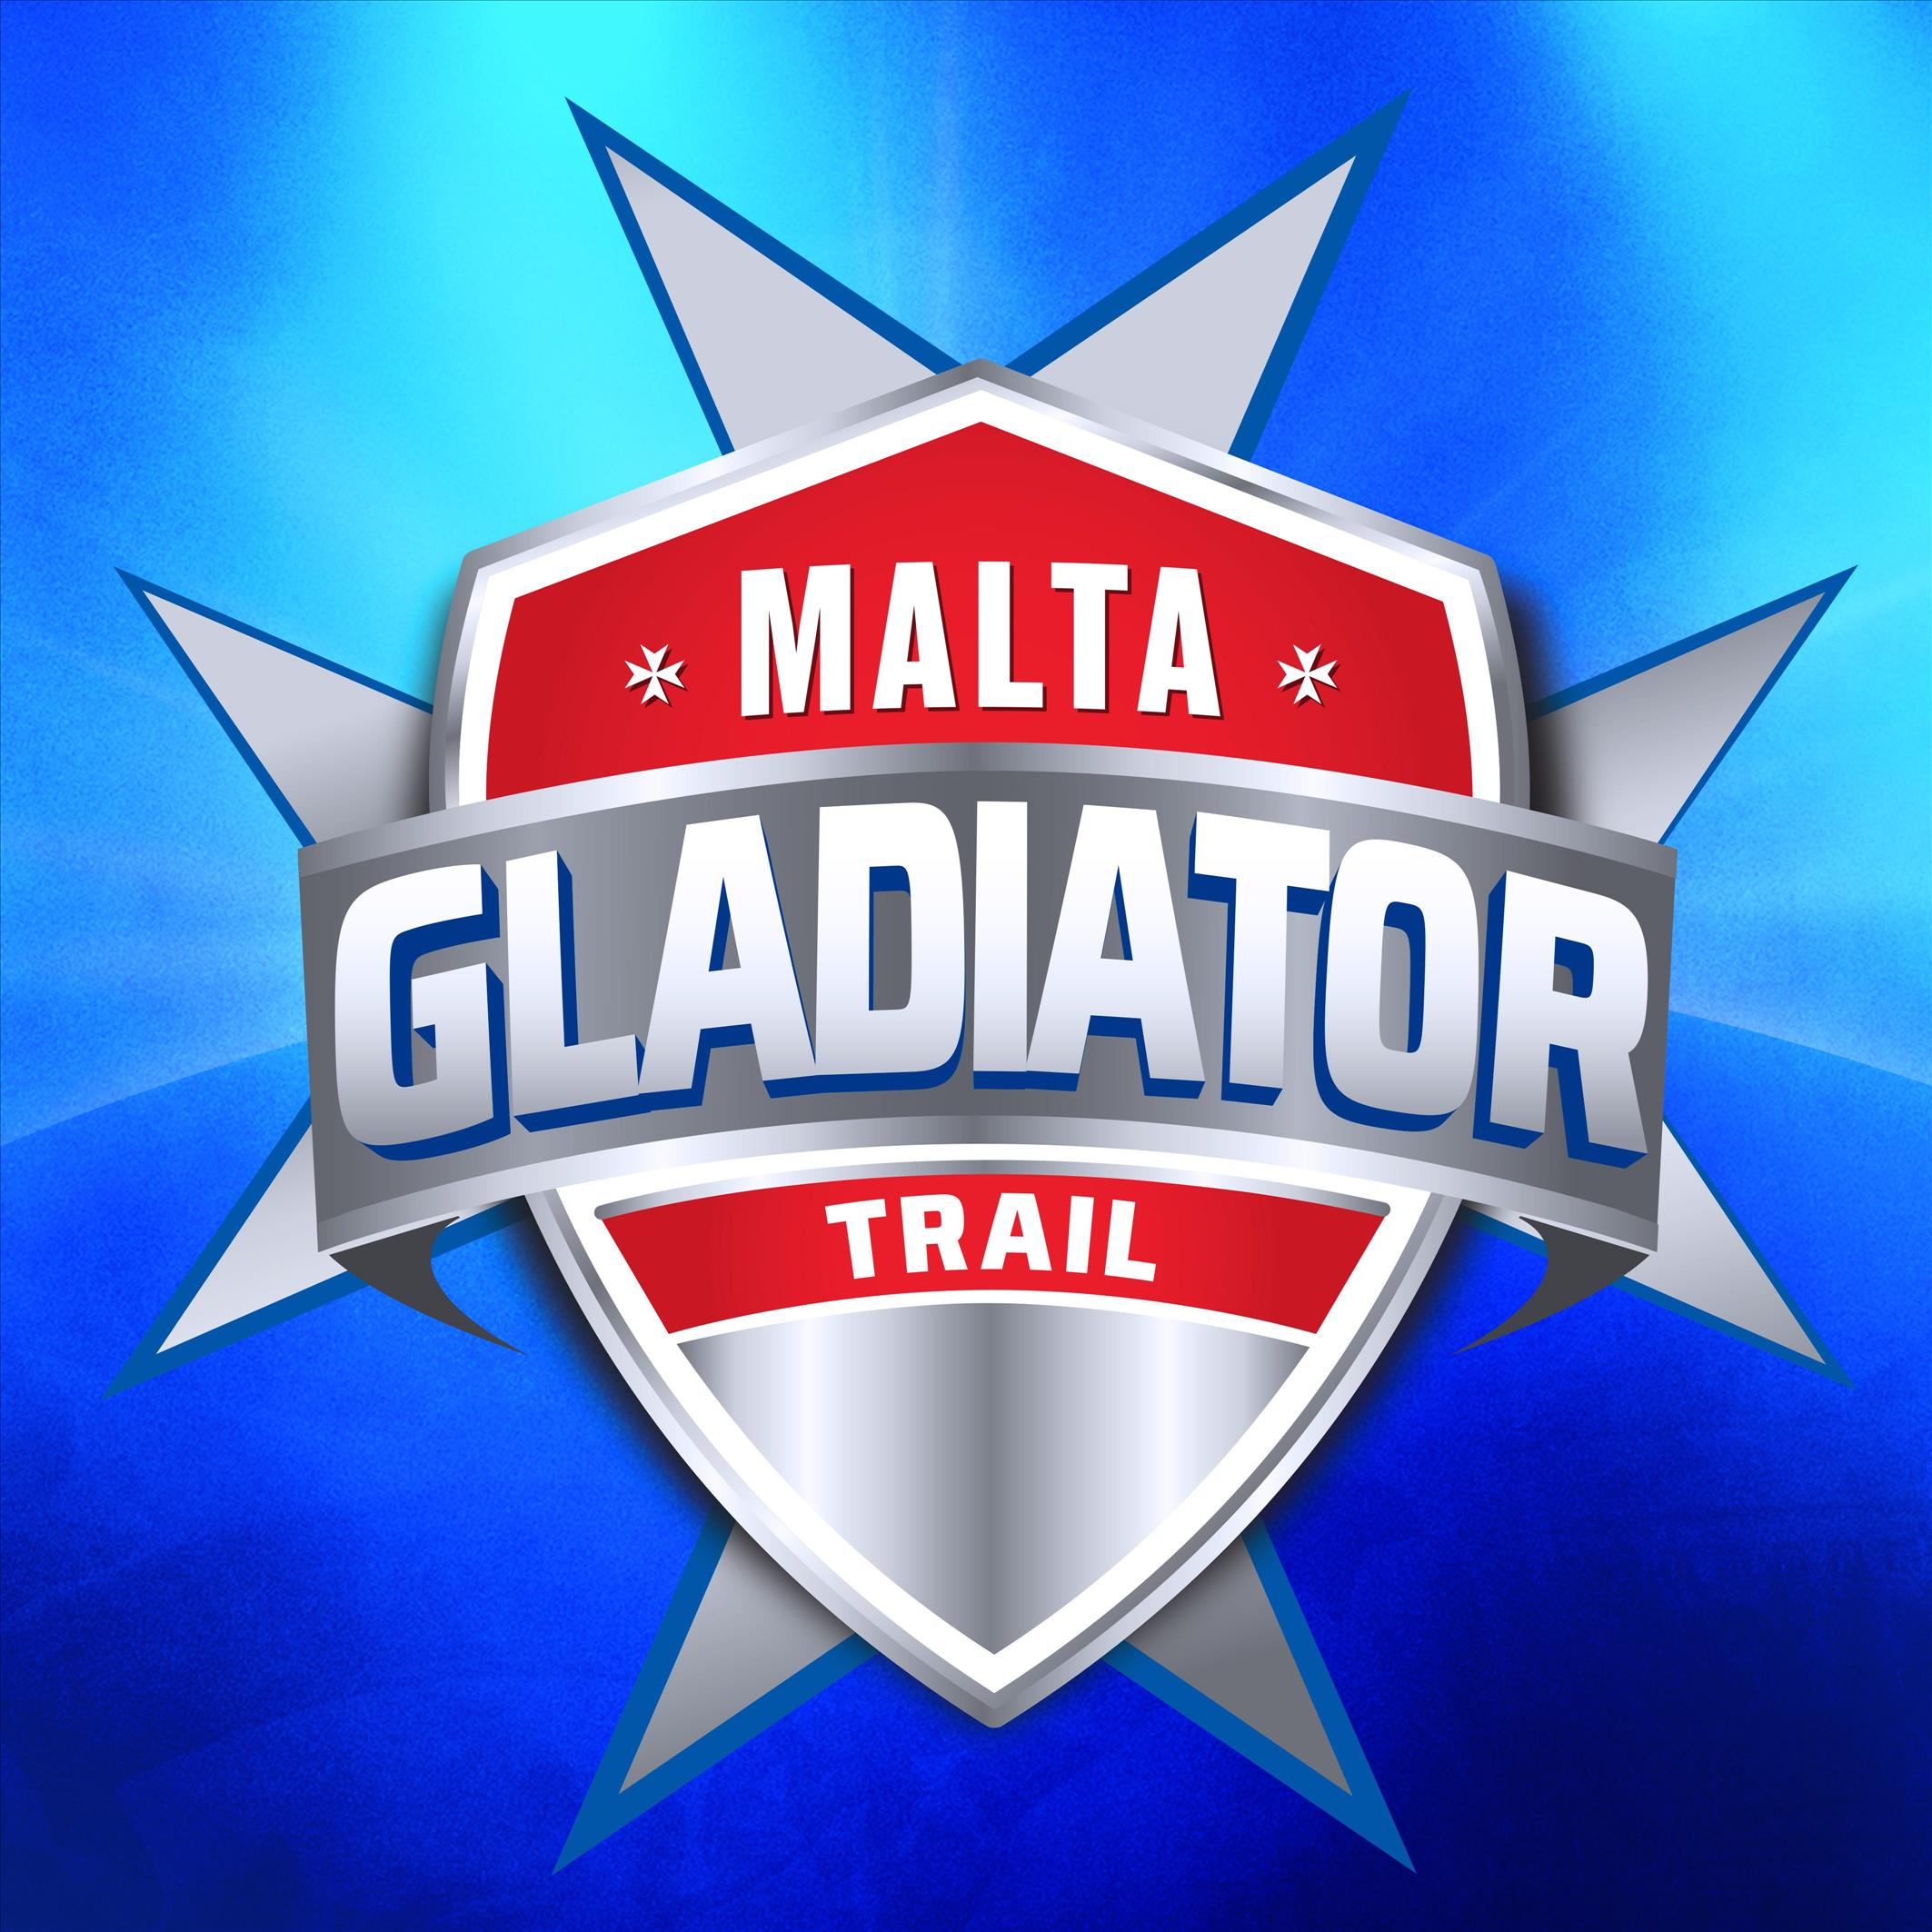 GLADIATOR TRAIL MALTA 2020 - COMPETITION TIME TRIALS flyer